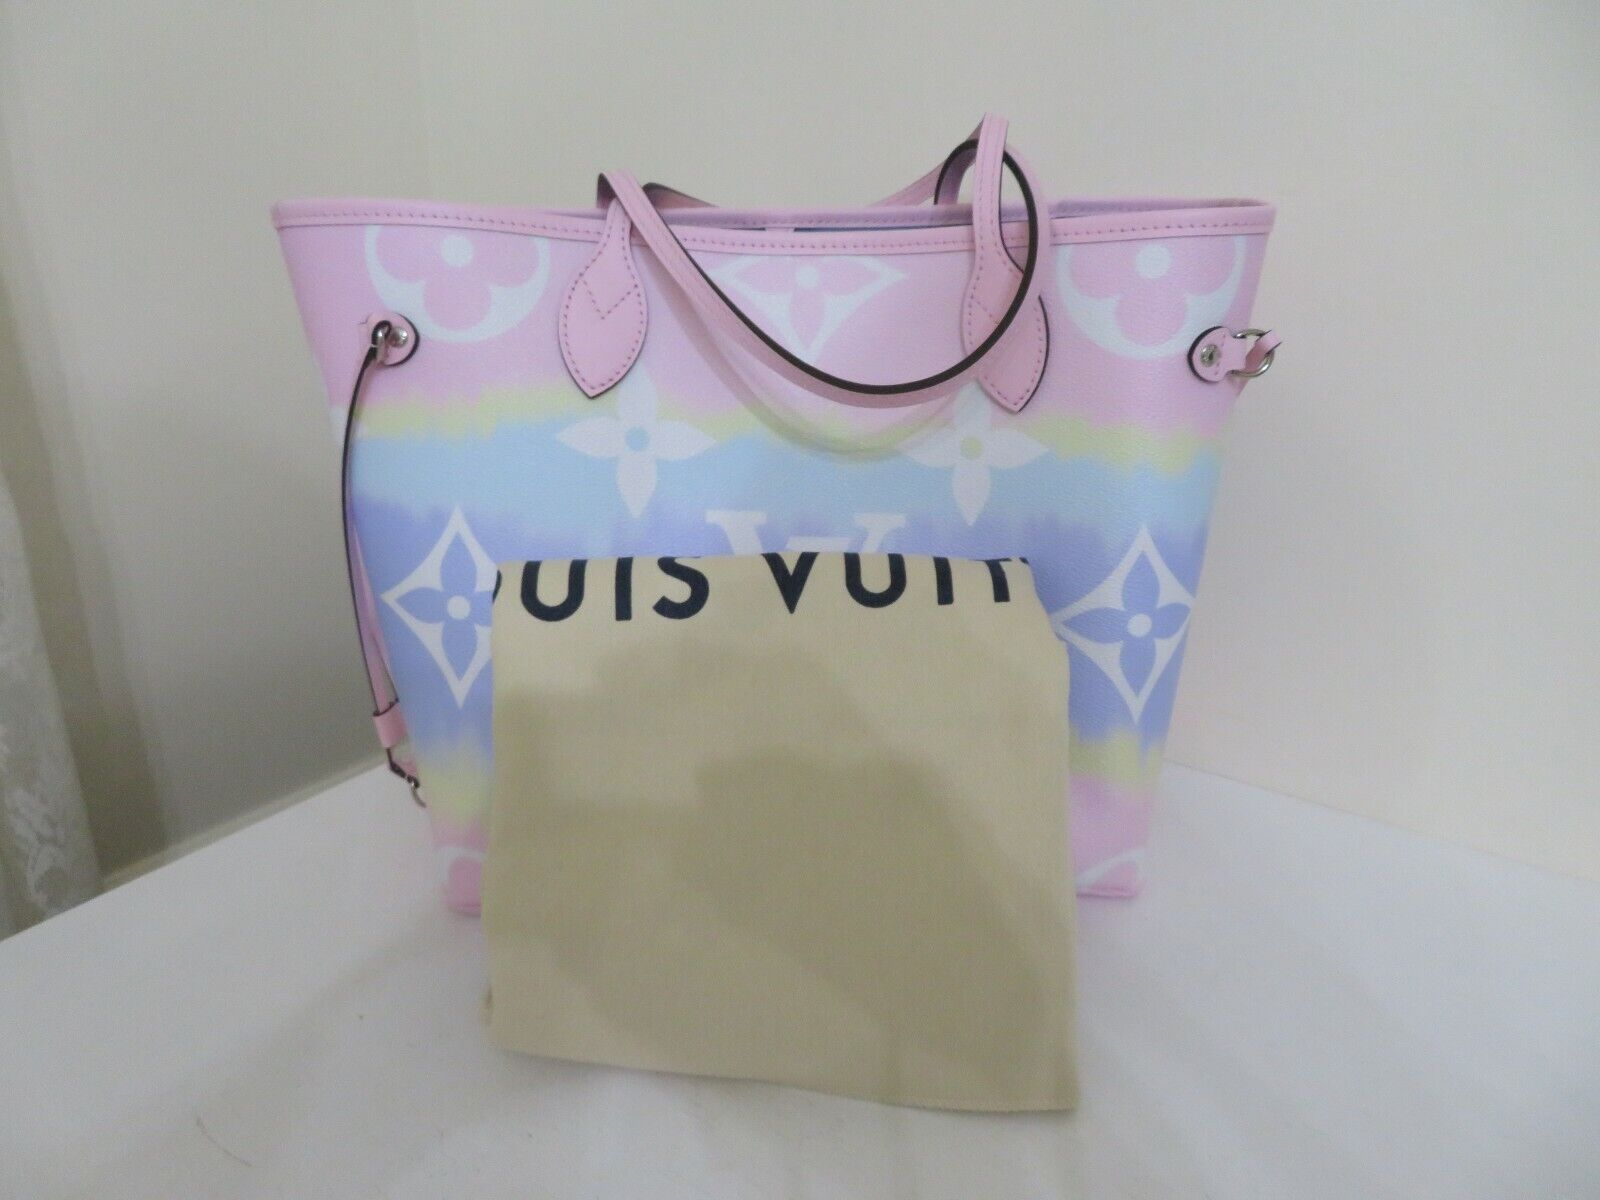 LOUIS VUITTON ESCALE NEVERFULL MM PASTEL TOTE BAG NEW NO POUCH